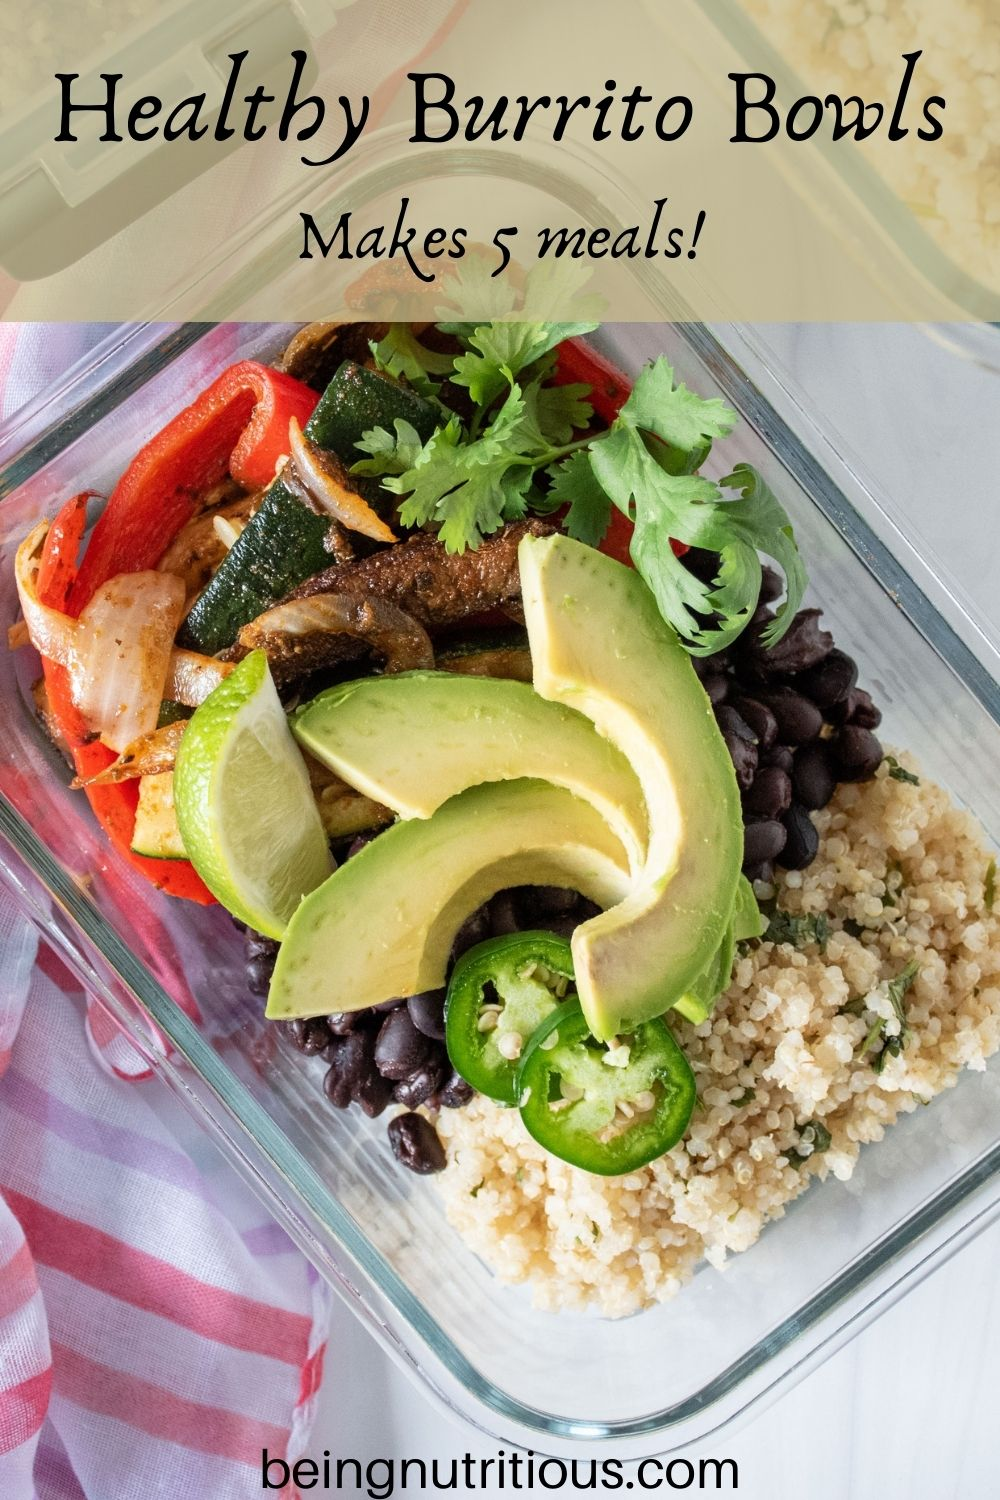 Glass meal prep container filled with burrito fillings. Text overlay: Healthy Burrito Bowls; makes 5 meals!